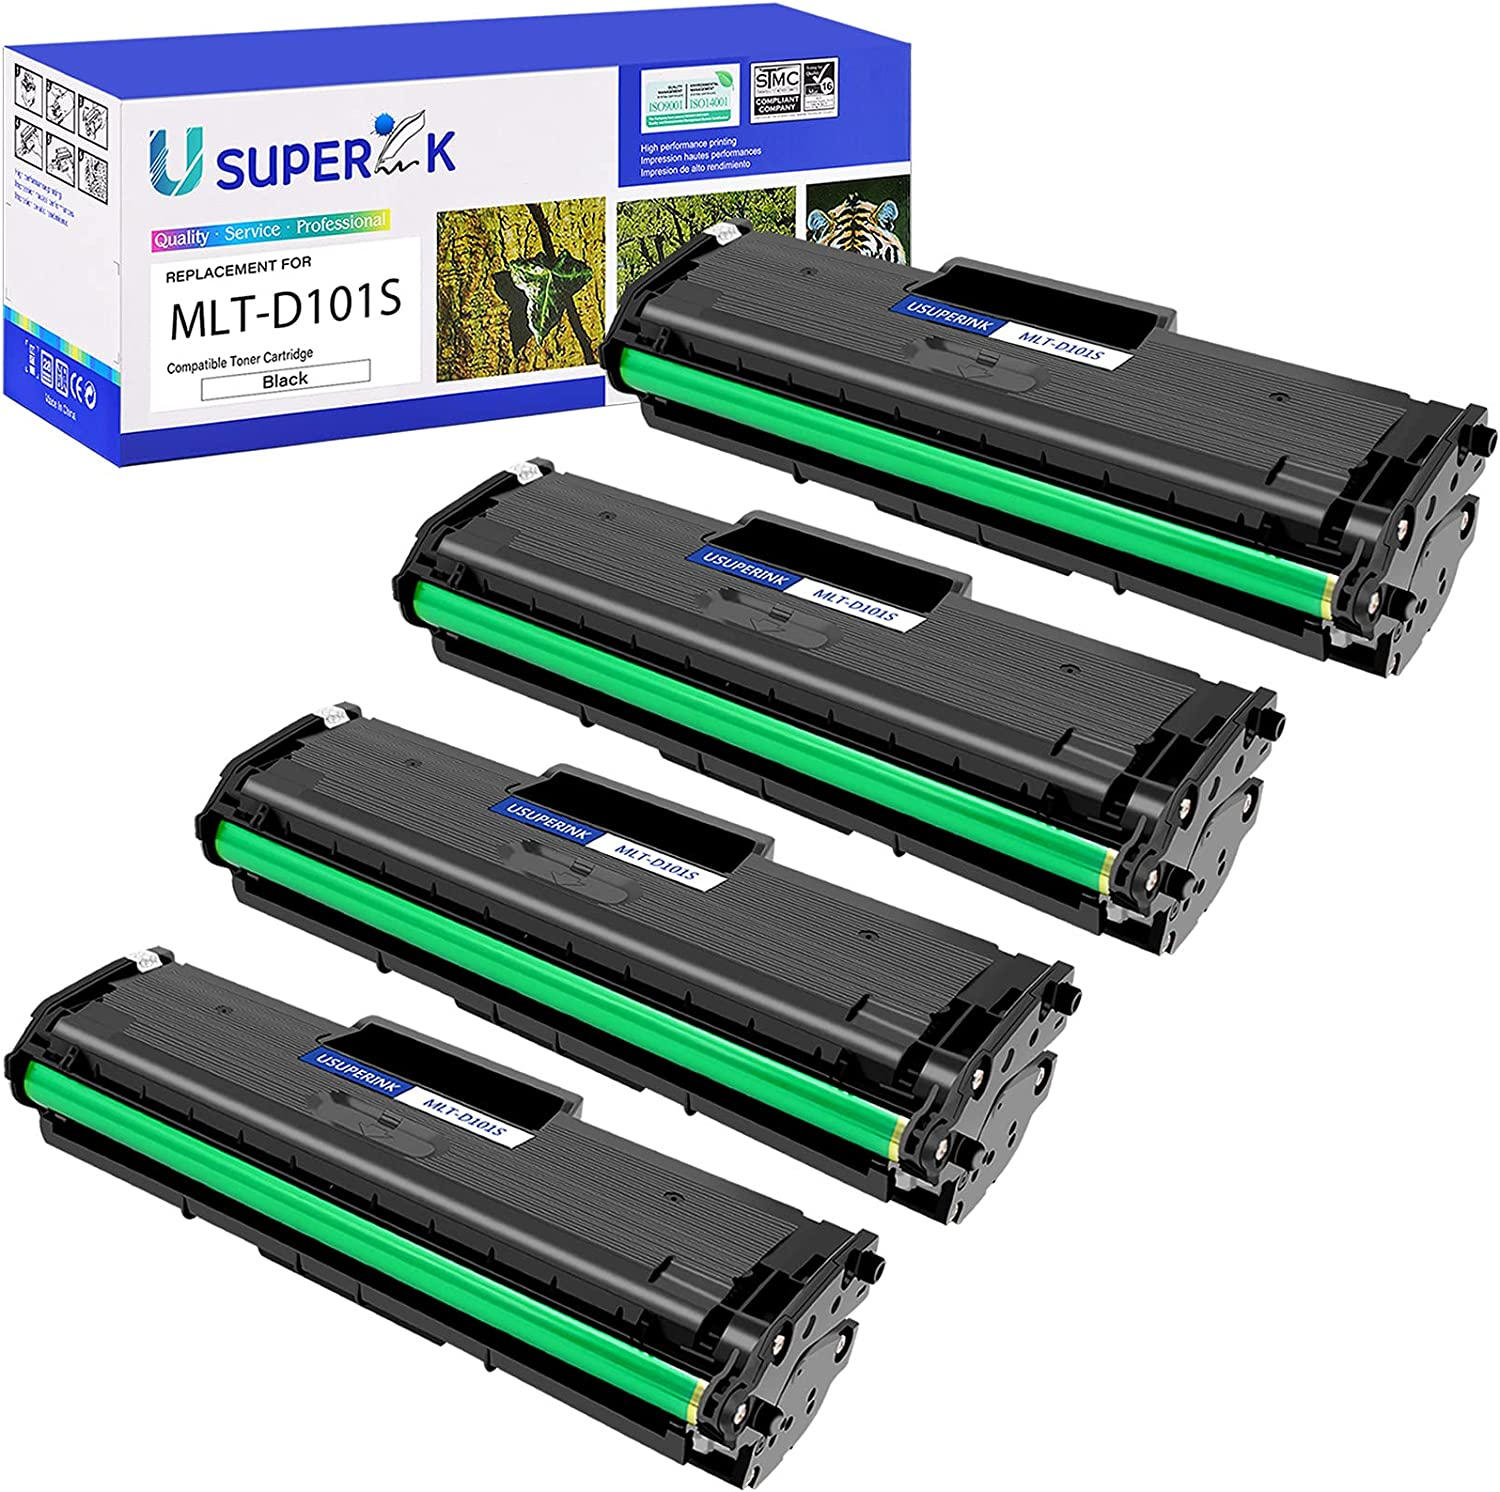 SuperInk 4 Milwaukee Mall Pack Compatible Toner Replacement Samsu Cartridge Beauty products for